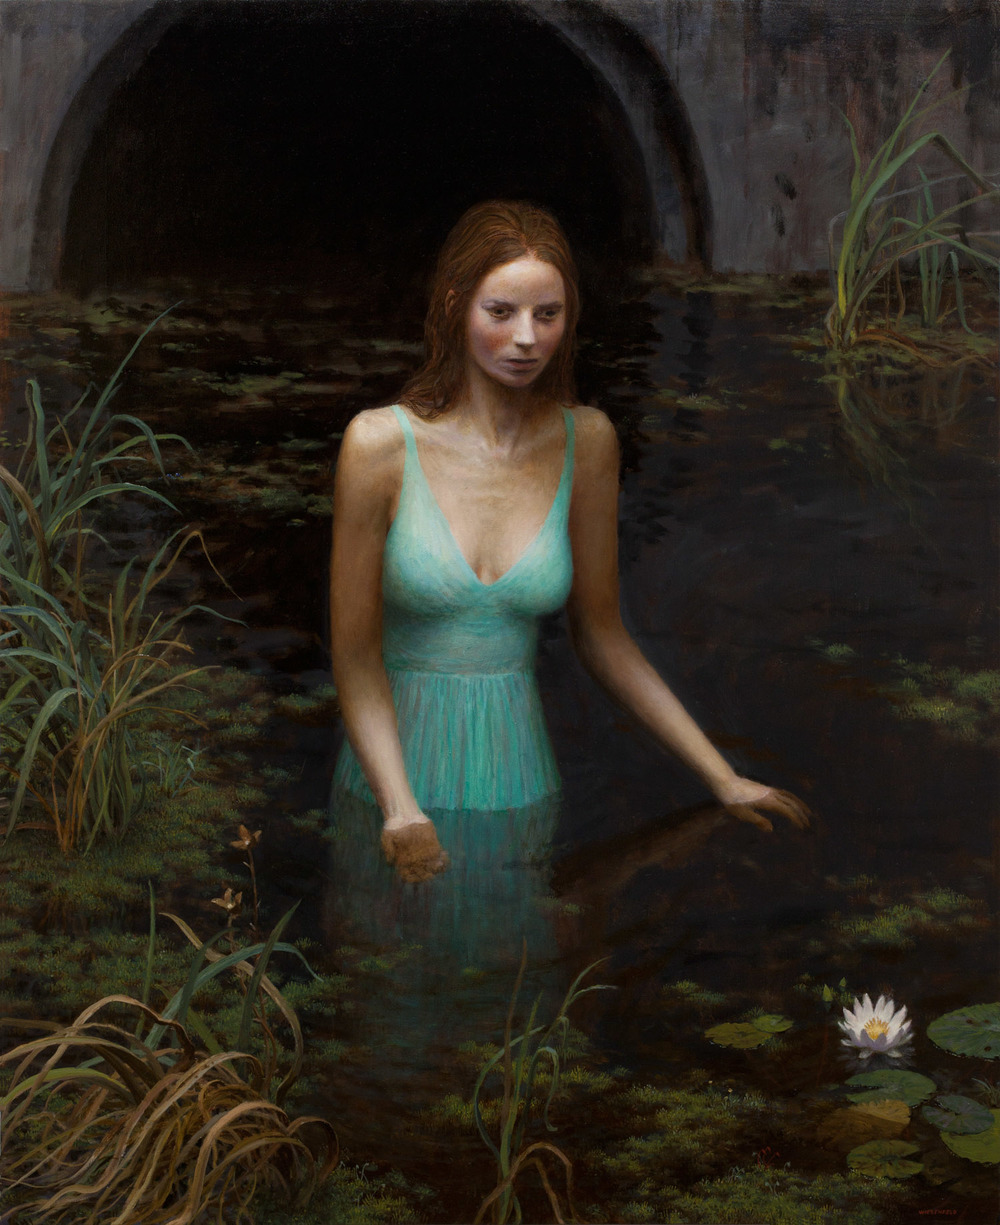 The Source , oil on canvas, 50 x 40 in / 127 x 102 cm, 2012